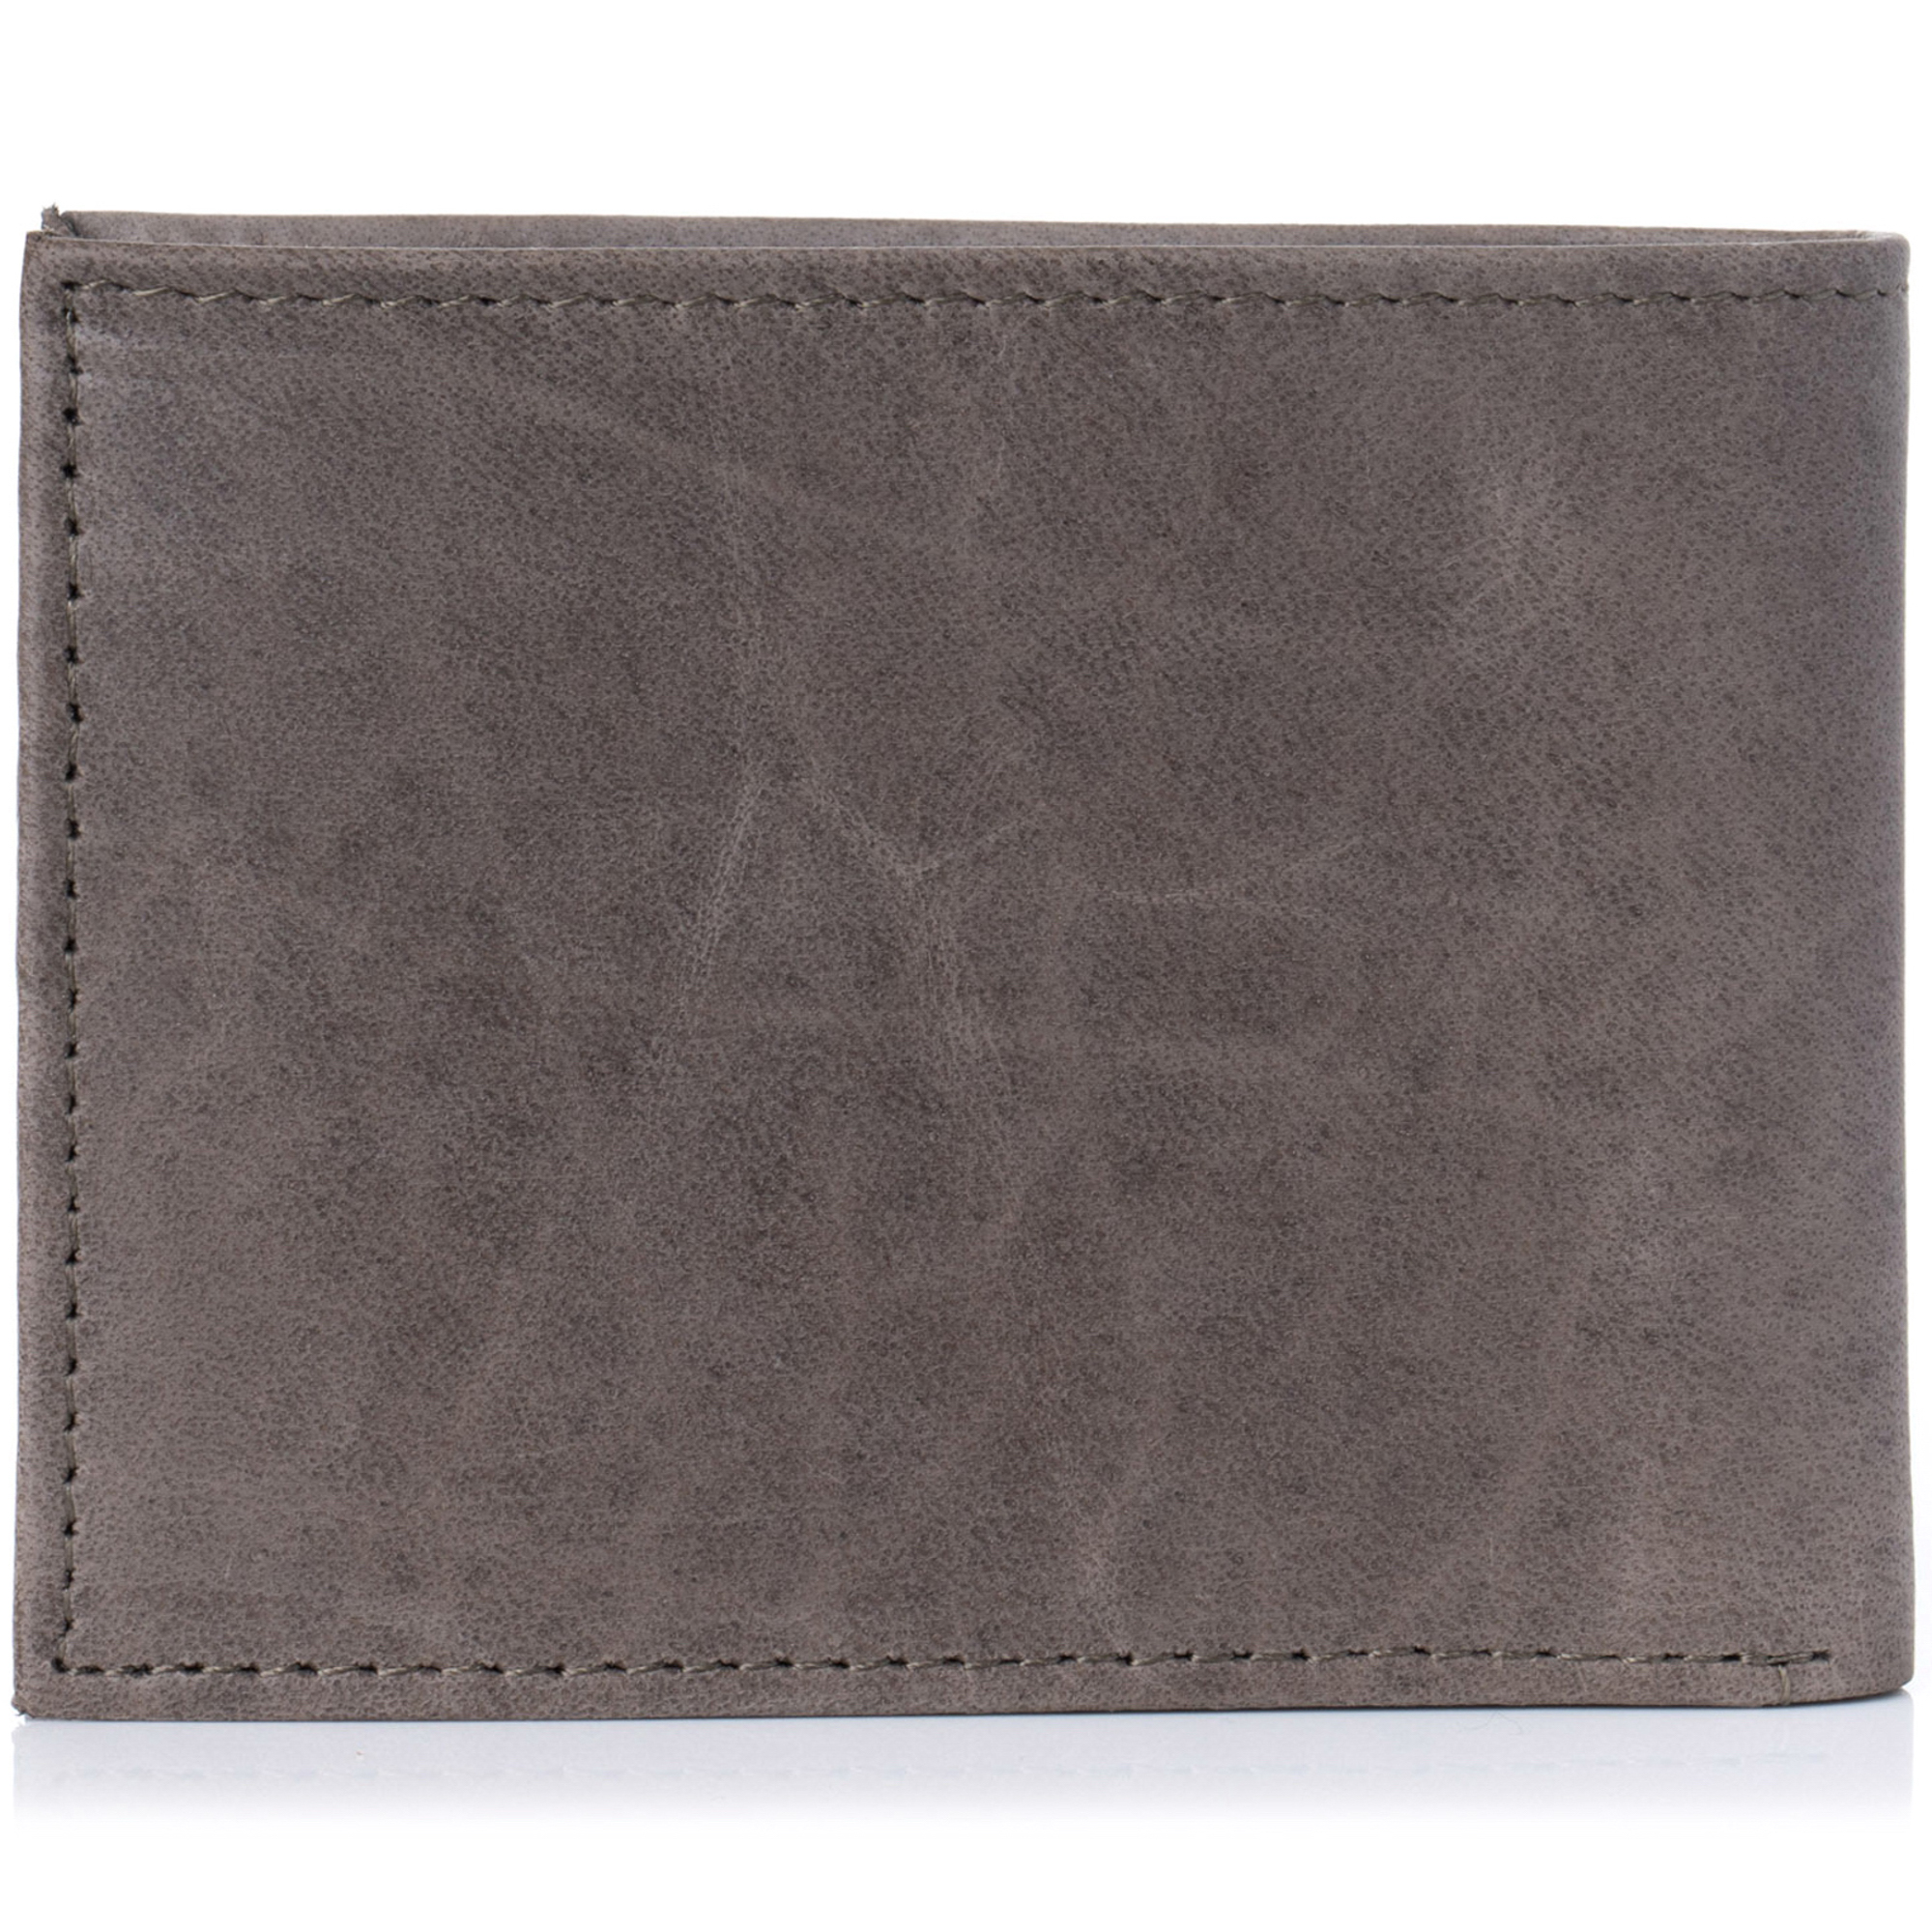 Alpine-Swiss-RFID-Blocking-Mens-Leather-Bifold-Wallet-Removable-ID-Card-Passcase thumbnail 35